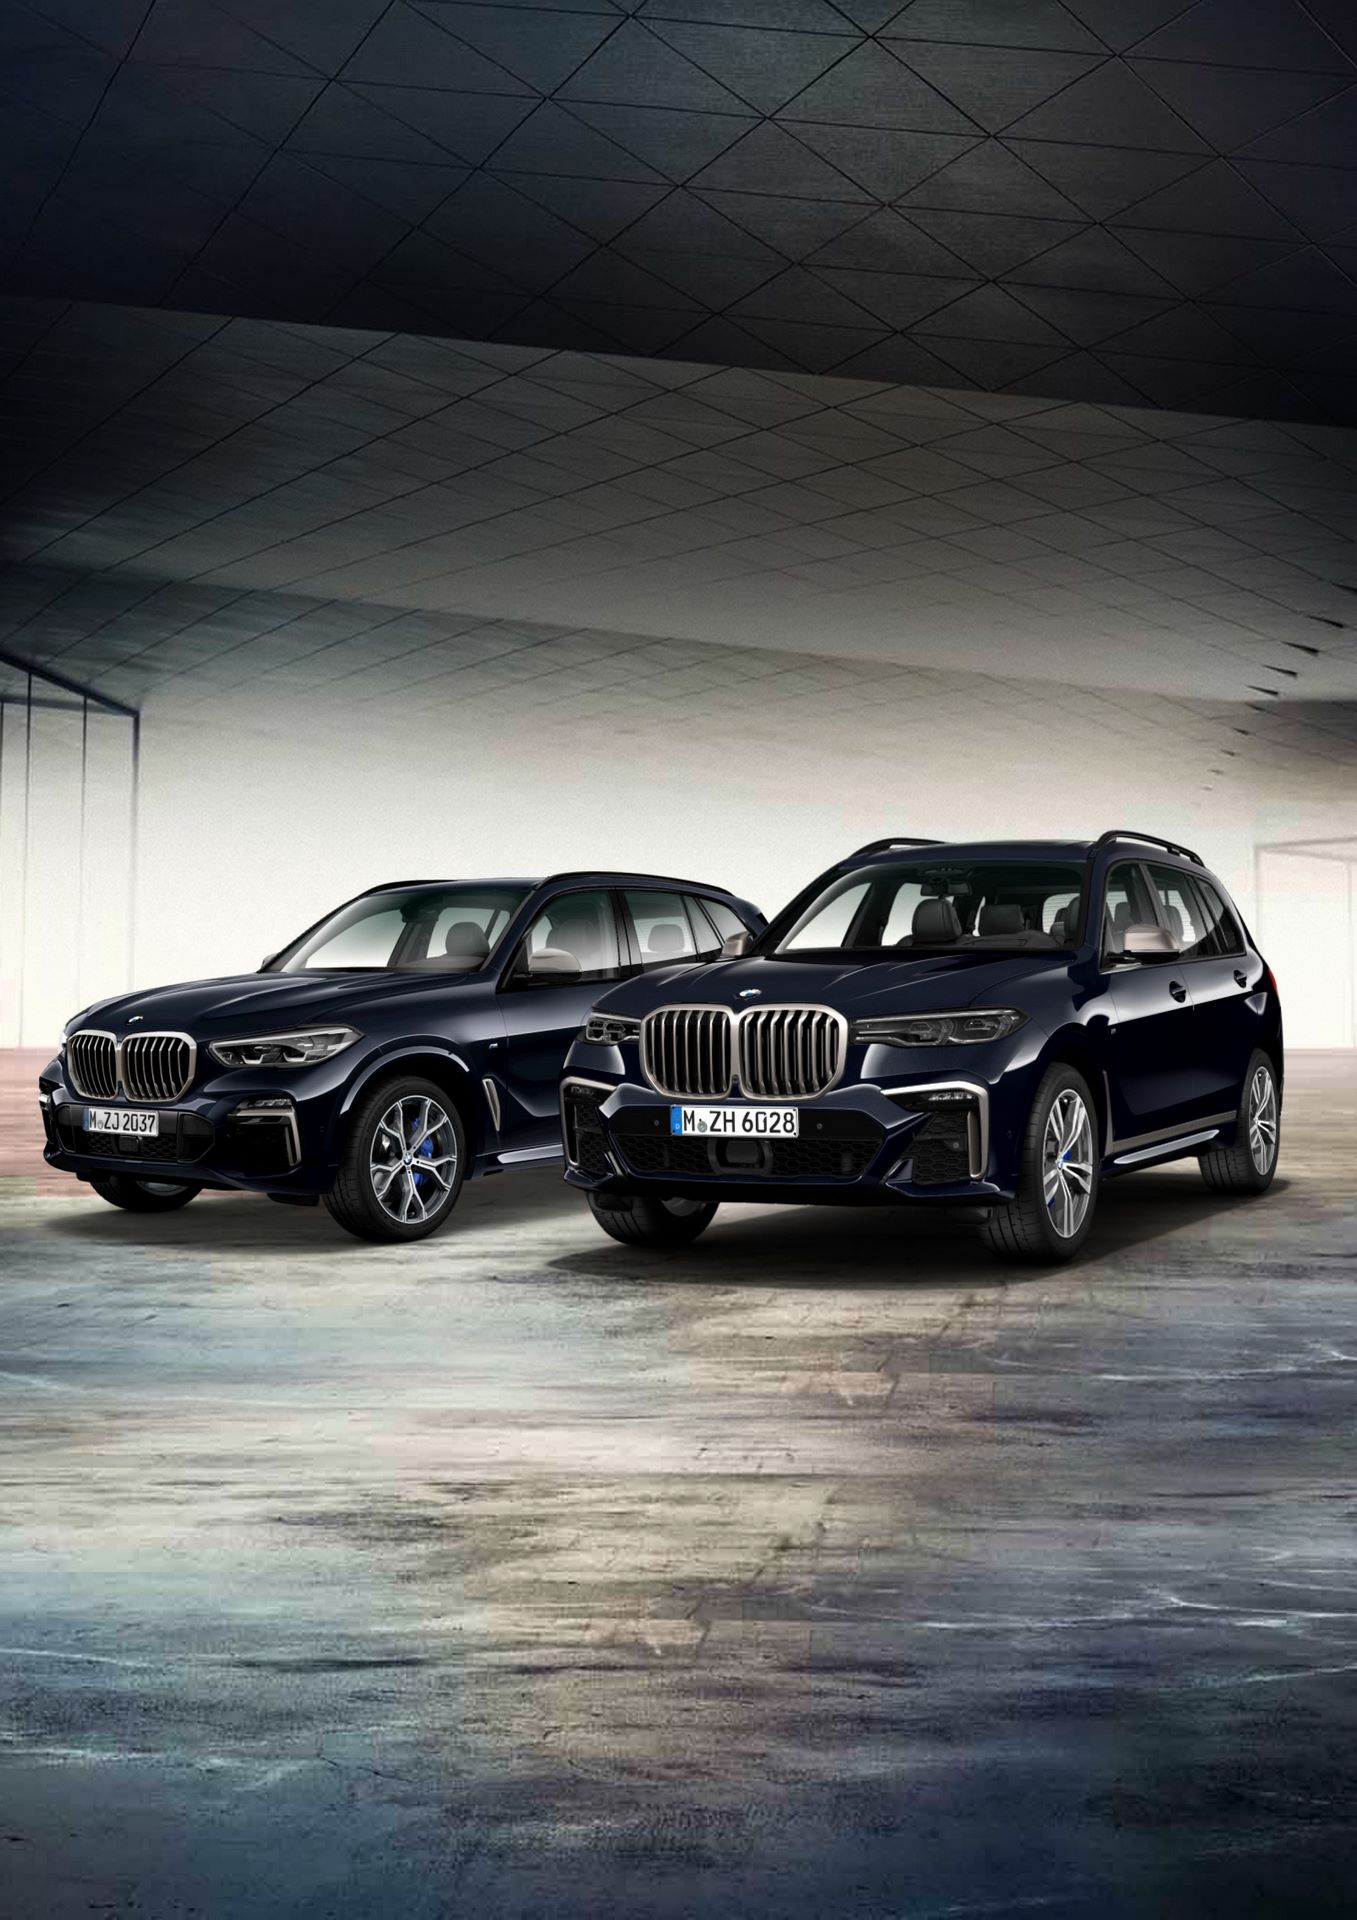 BMW-X5-M50d-and-X7-M50d-Final-Edition-3